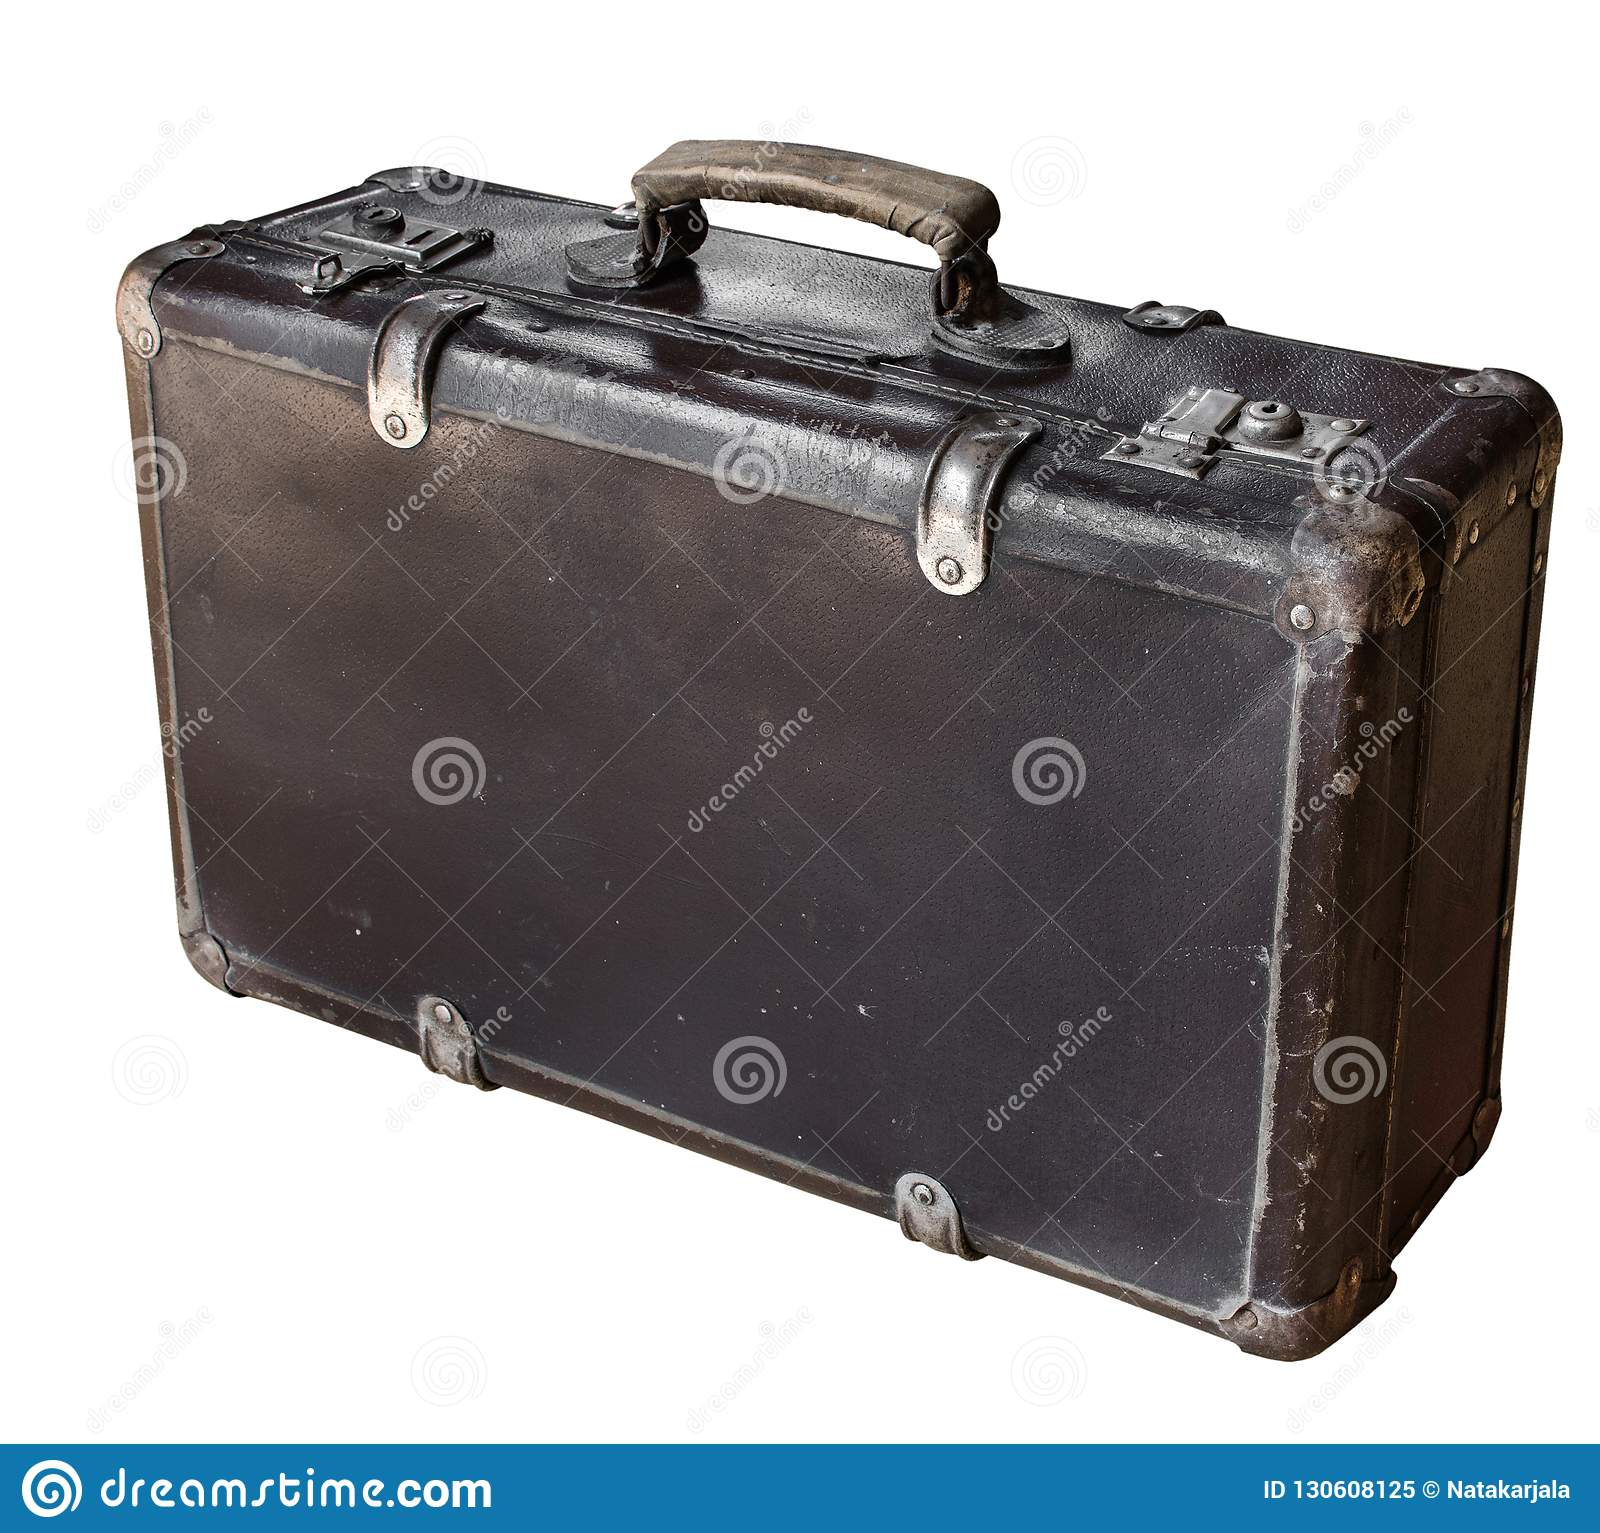 Old brown suitcase isolated on white background. Retro style. Copy space